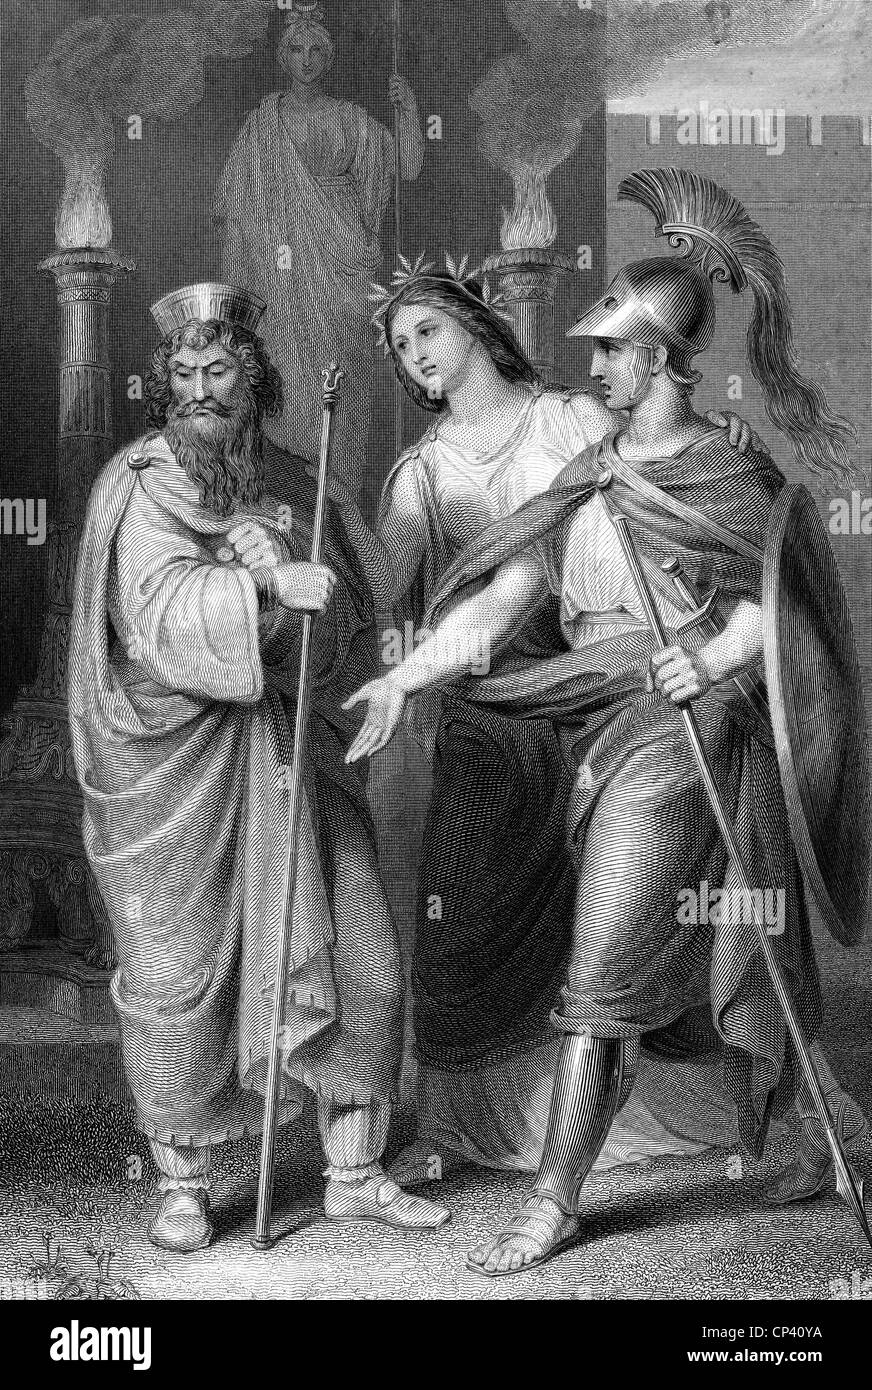 theater / theatre, plays, Iphigenia in Tauris, by Johann Wolfgang von Goethe, act 5, scene 6, steel engraving by - Stock Image